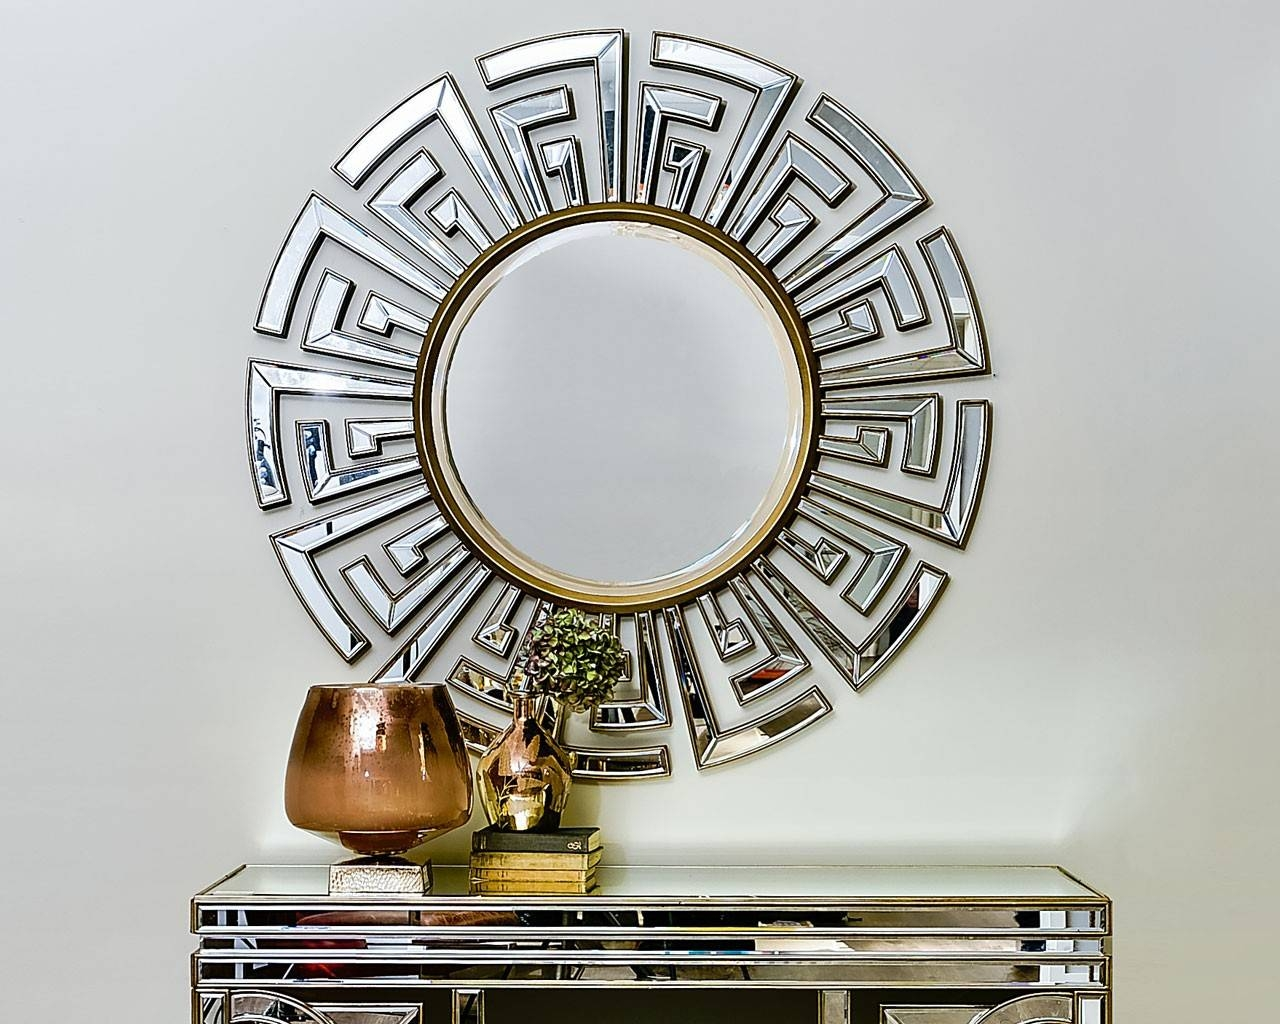 Contemporary Art Deco Round Mirror | Statement Circular Mirrors inside Round Art Deco Mirrors (Image 6 of 15)